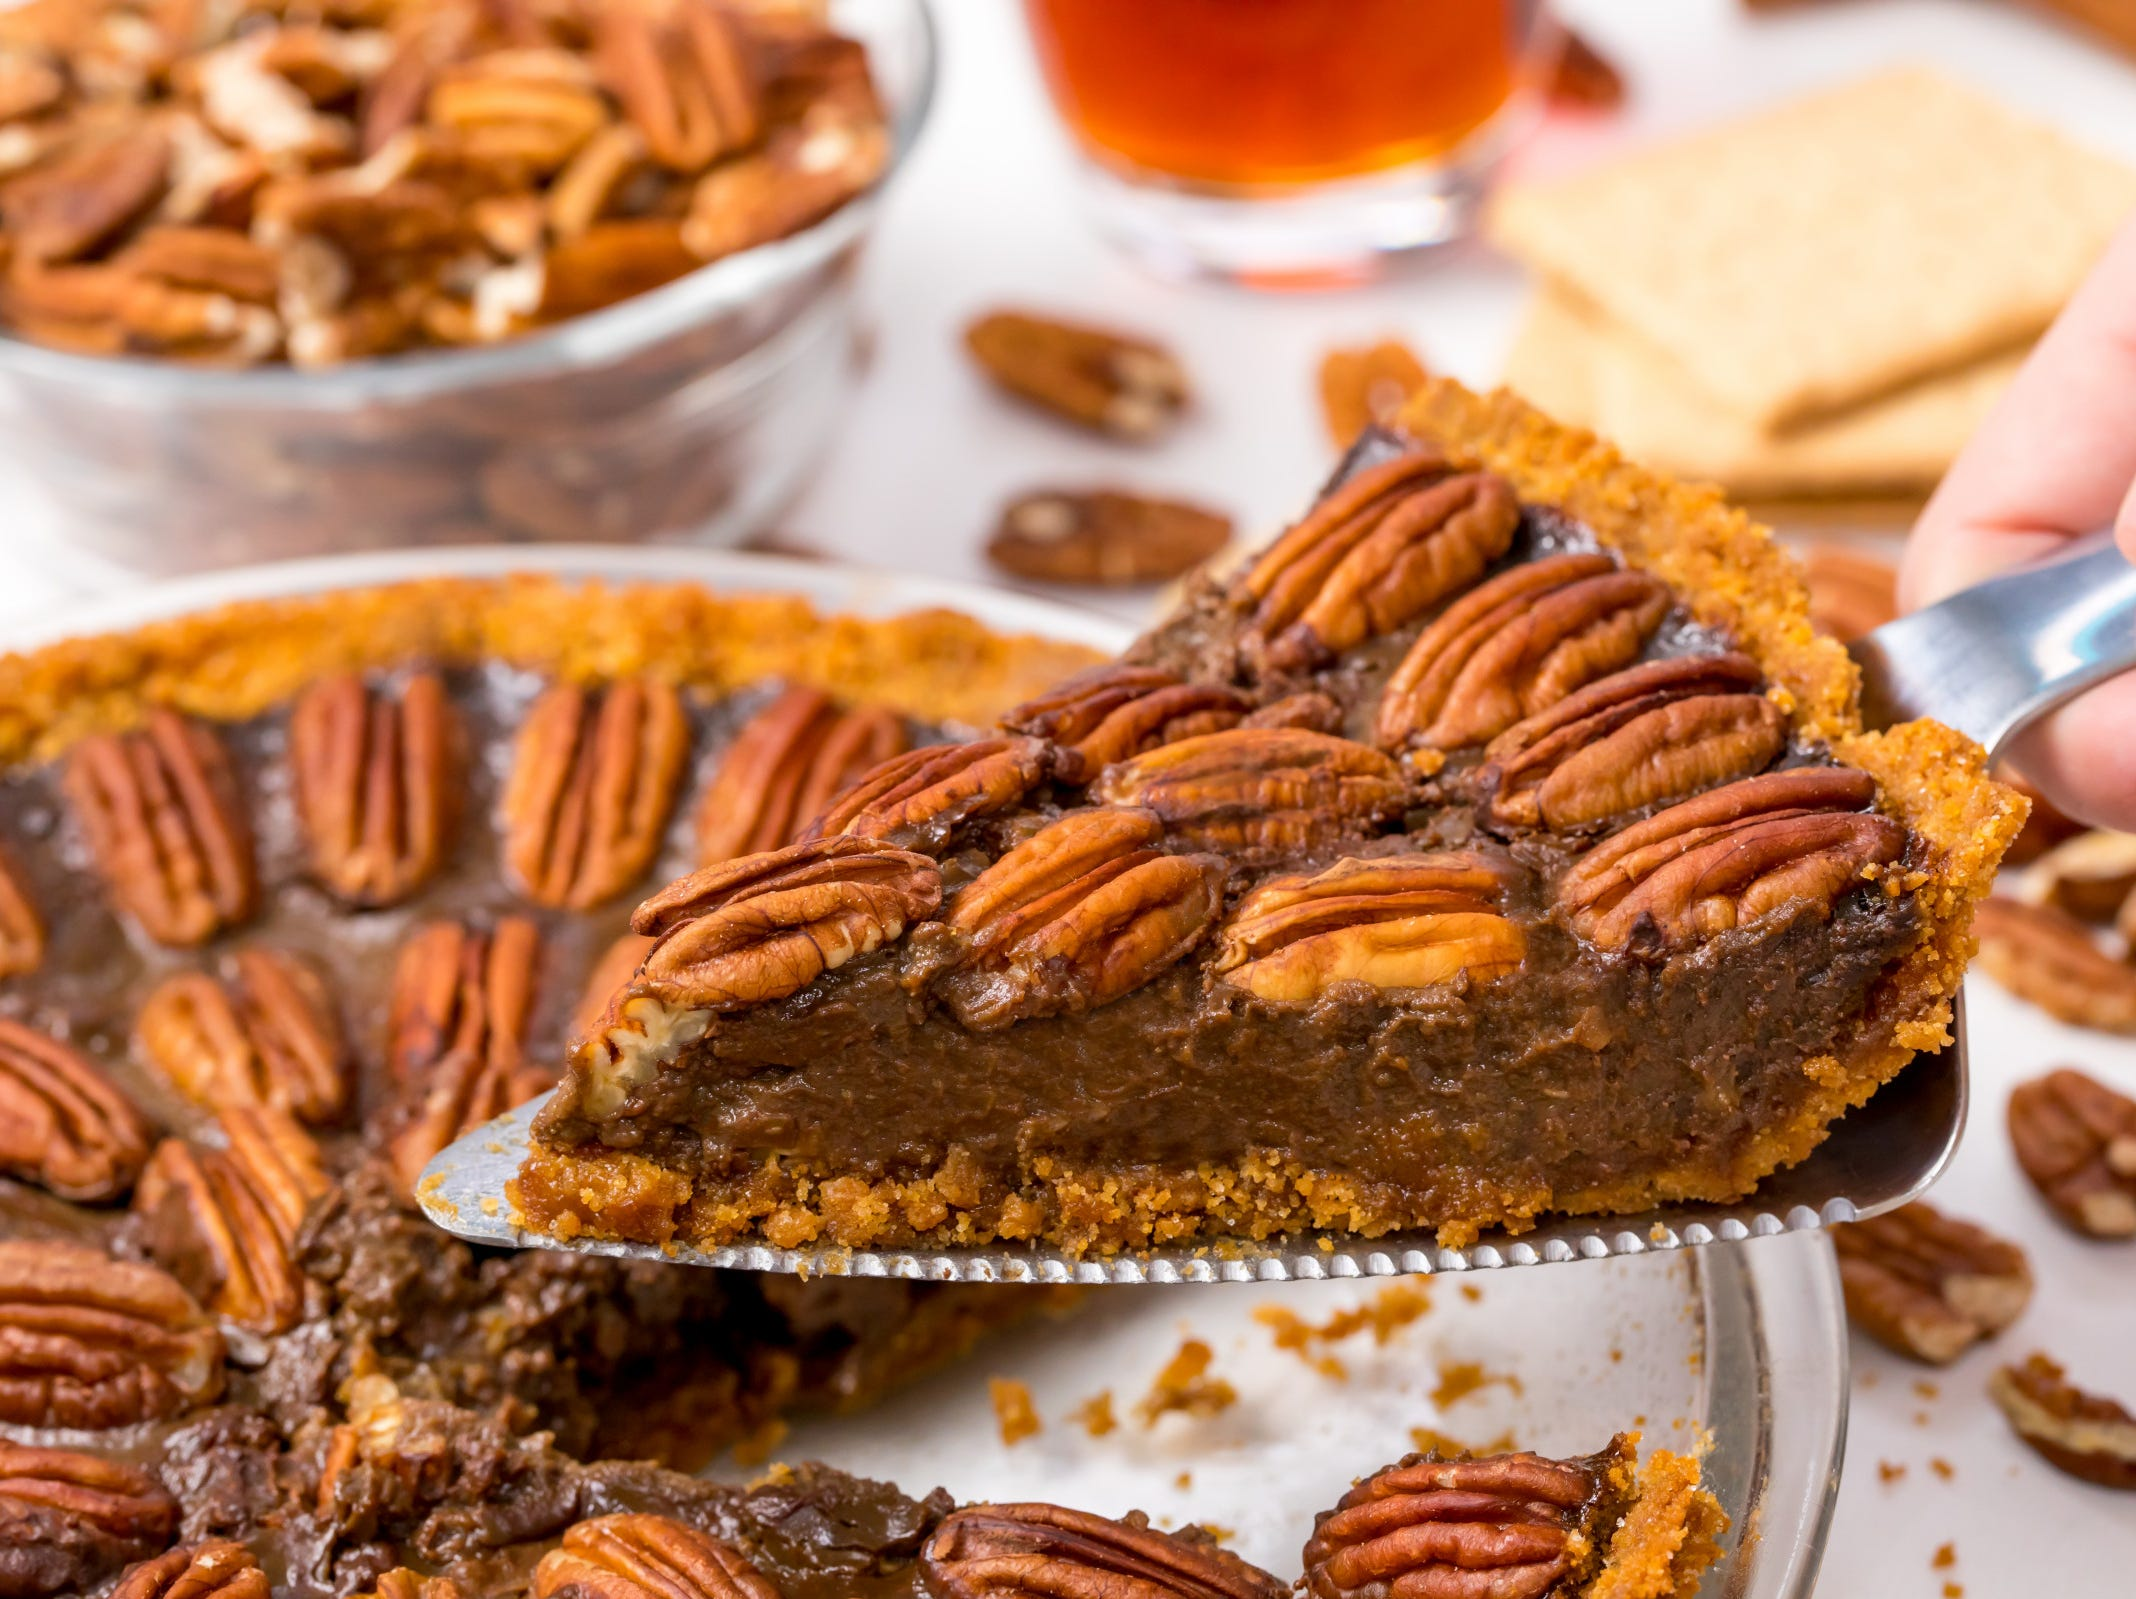 Now you can have your pie, and eat it too — especially if it's a healthy vegan chocolate pecan pie. Eating vegan (or just healthfully) no longer means missing out on your favorite treats. This recipe, inspired by Chocolate Covered Katie, still lets you eat clean while enjoying a decadent classic.